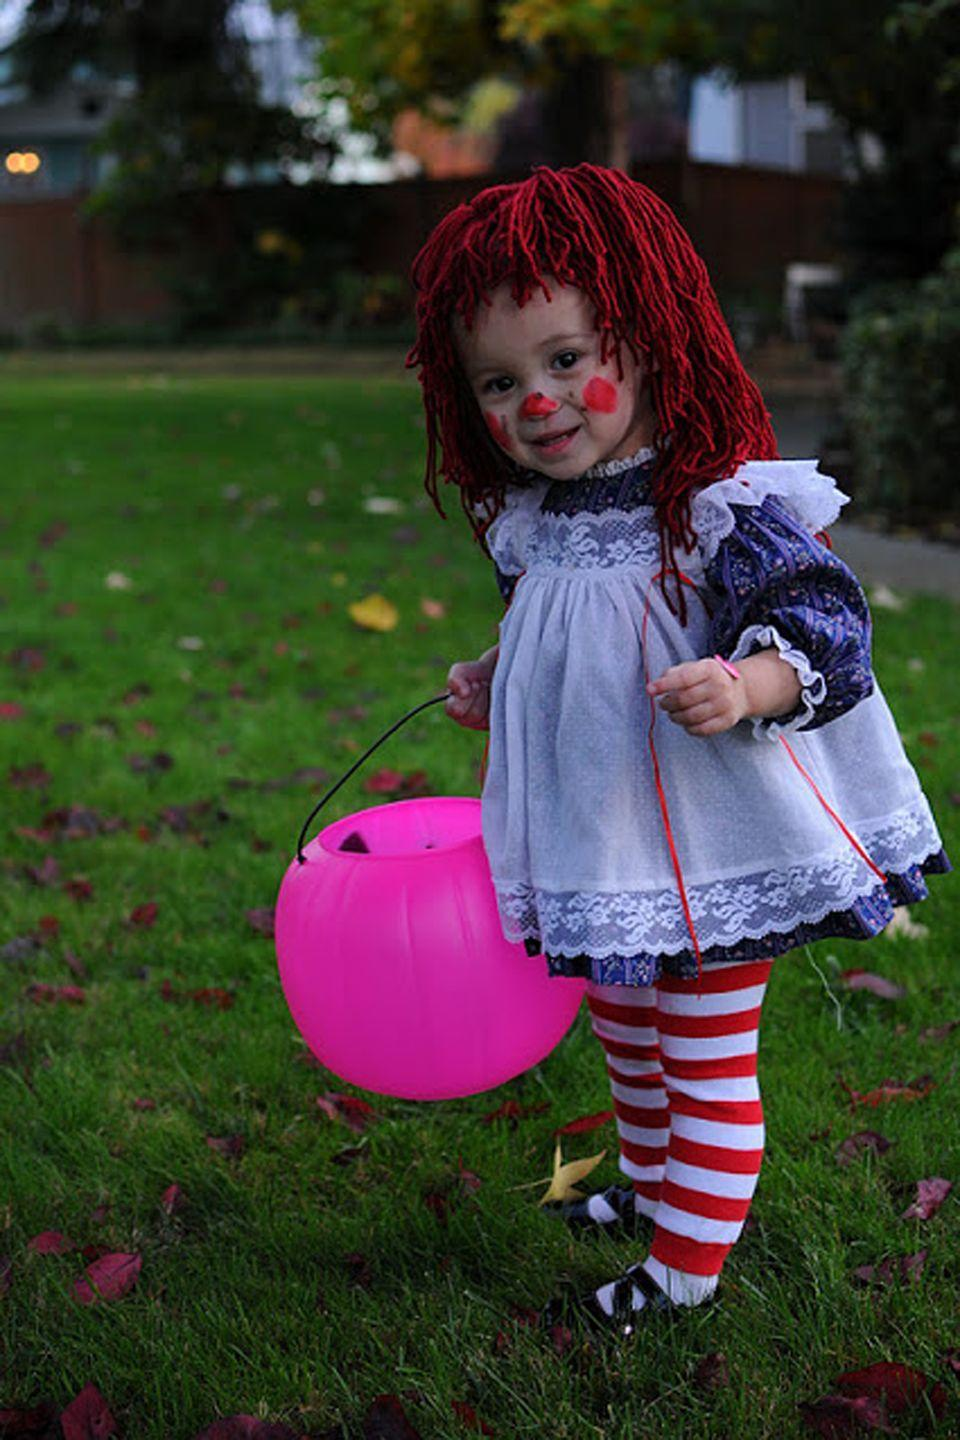 """<p>Raggedy Ann? More like Adorable Ann! (Sorry. We had to.)</p><p><strong>Get the tutorial at <a href=""""http://prettylittlebuzz.blogspot.com/2011/11/wordless-wednesday-halloween-recap.html"""" rel=""""nofollow noopener"""" target=""""_blank"""" data-ylk=""""slk:Pretty Little Buzz"""" class=""""link rapid-noclick-resp"""">Pretty Little Buzz</a>.</strong></p><p><strong><a class=""""link rapid-noclick-resp"""" href=""""https://www.amazon.com/Christmas-Holiday-Winter-Styles-Warmers/dp/B018ZV1ZOK/?tag=syn-yahoo-20&ascsubtag=%5Bartid%7C10050.g.4975%5Bsrc%7Cyahoo-us"""" rel=""""nofollow noopener"""" target=""""_blank"""" data-ylk=""""slk:SHOP LEG WARMERS"""">SHOP LEG WARMERS</a></strong></p>"""